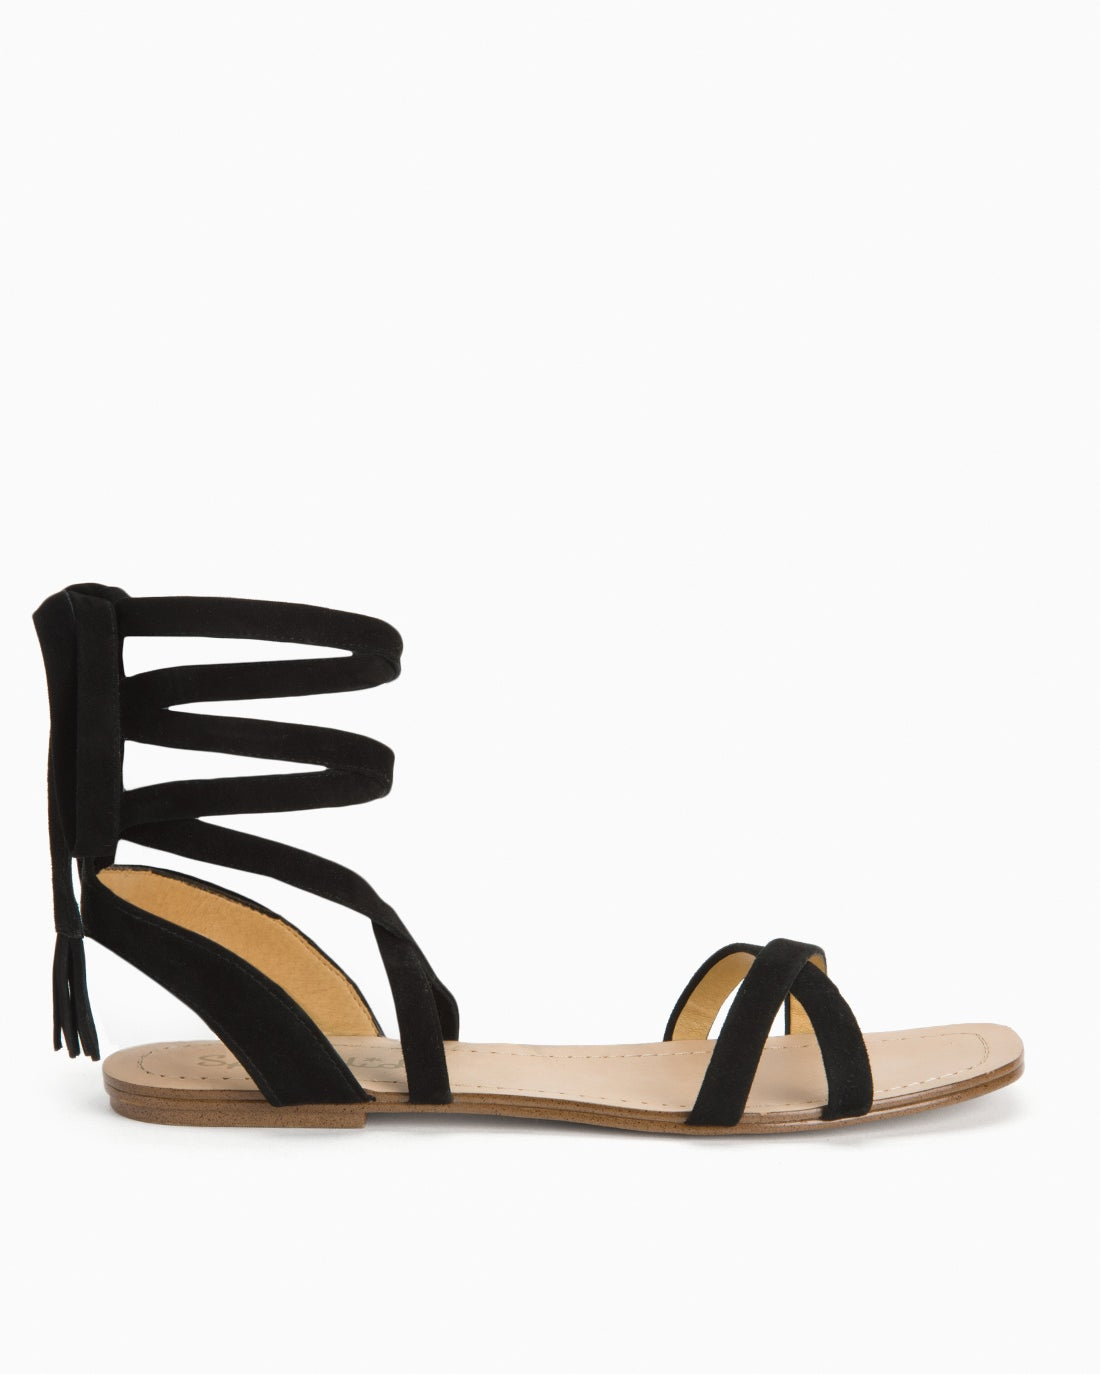 841264e3b91 Home  Janelle Sandal. Skip to the end of the images gallery